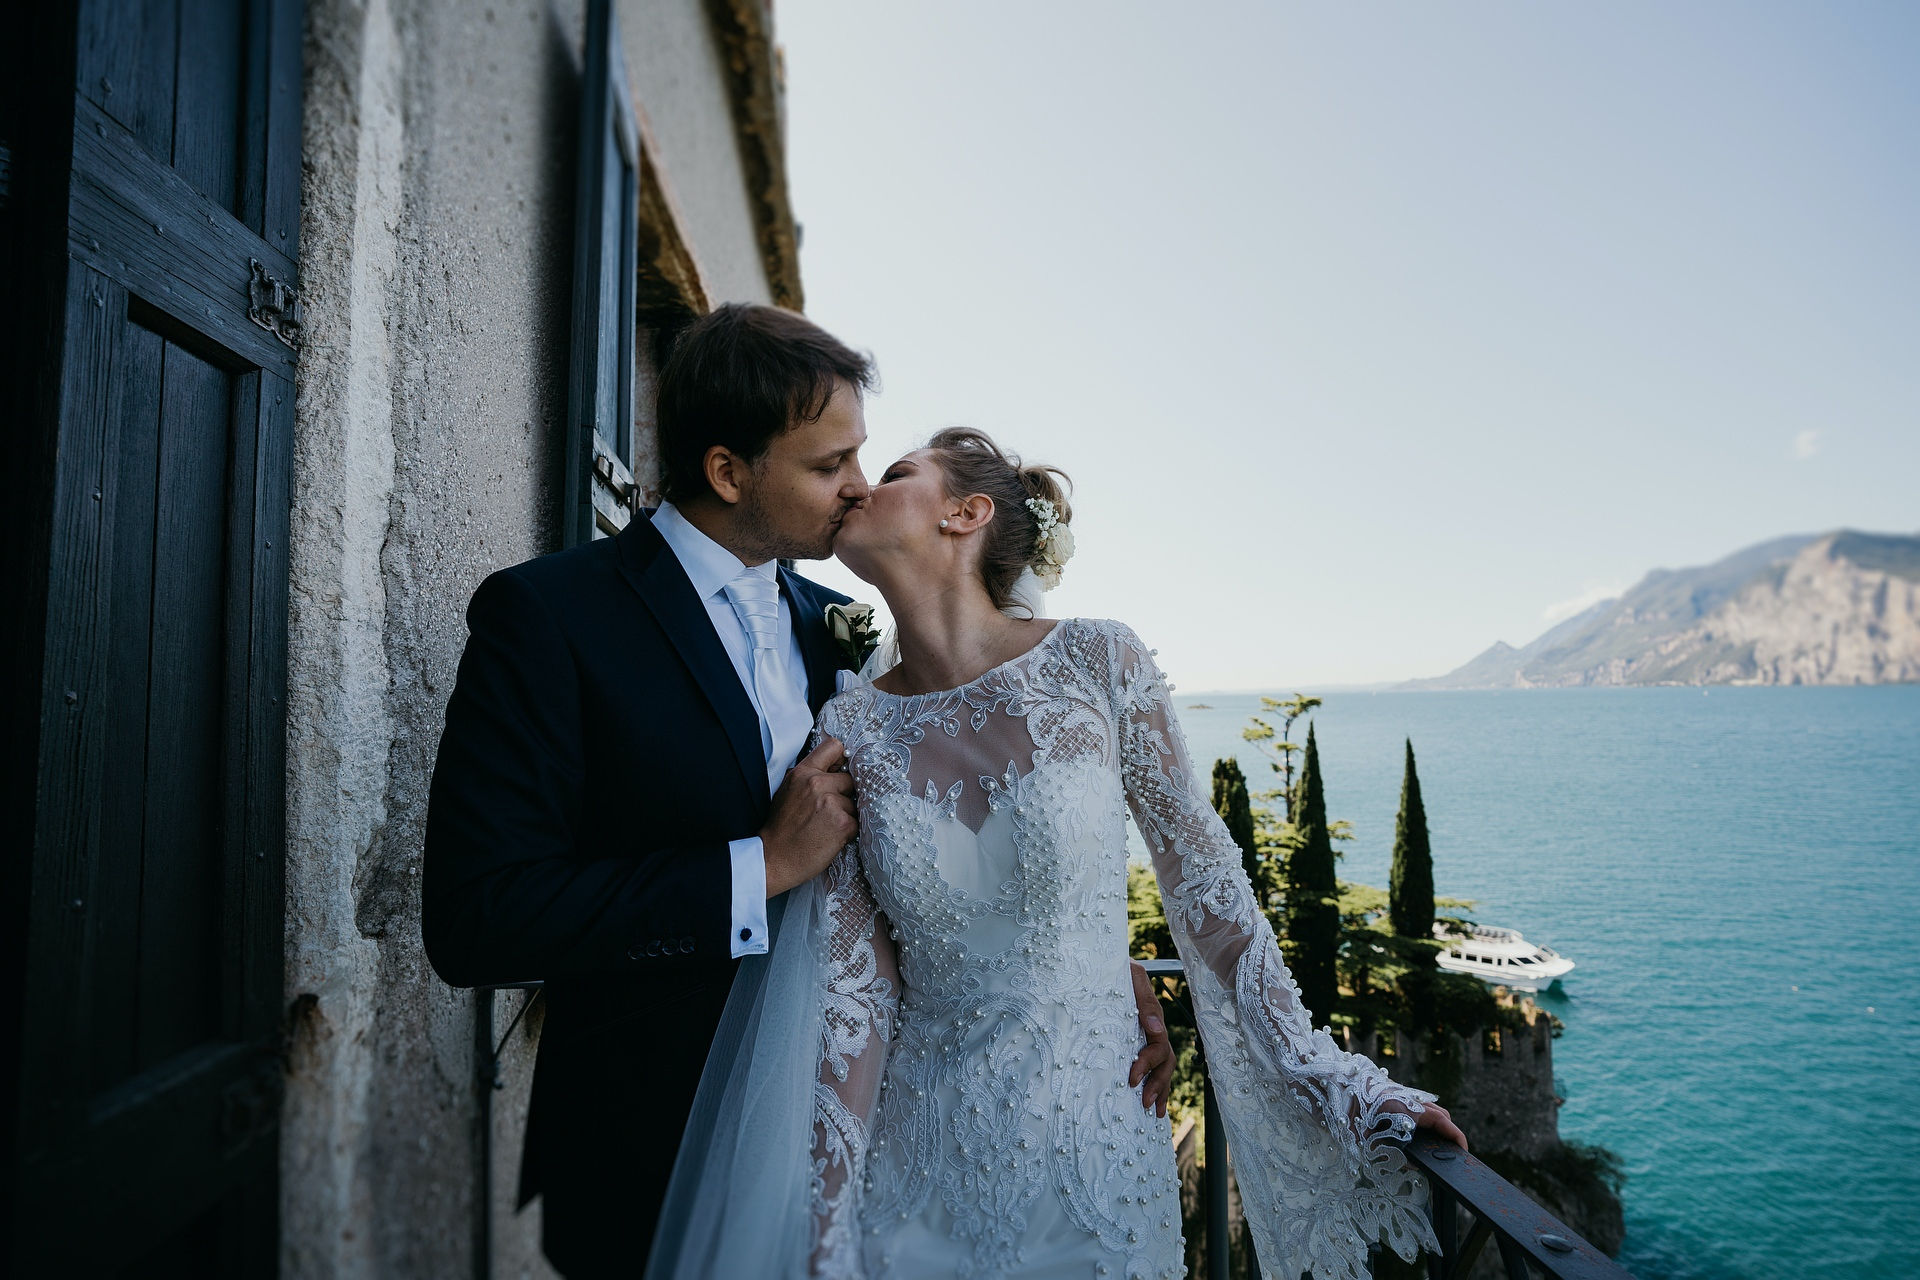 Malcesine Castle IT Elopement Couple Lake Portrait | the wonderful view of the lake behind the bride and groom